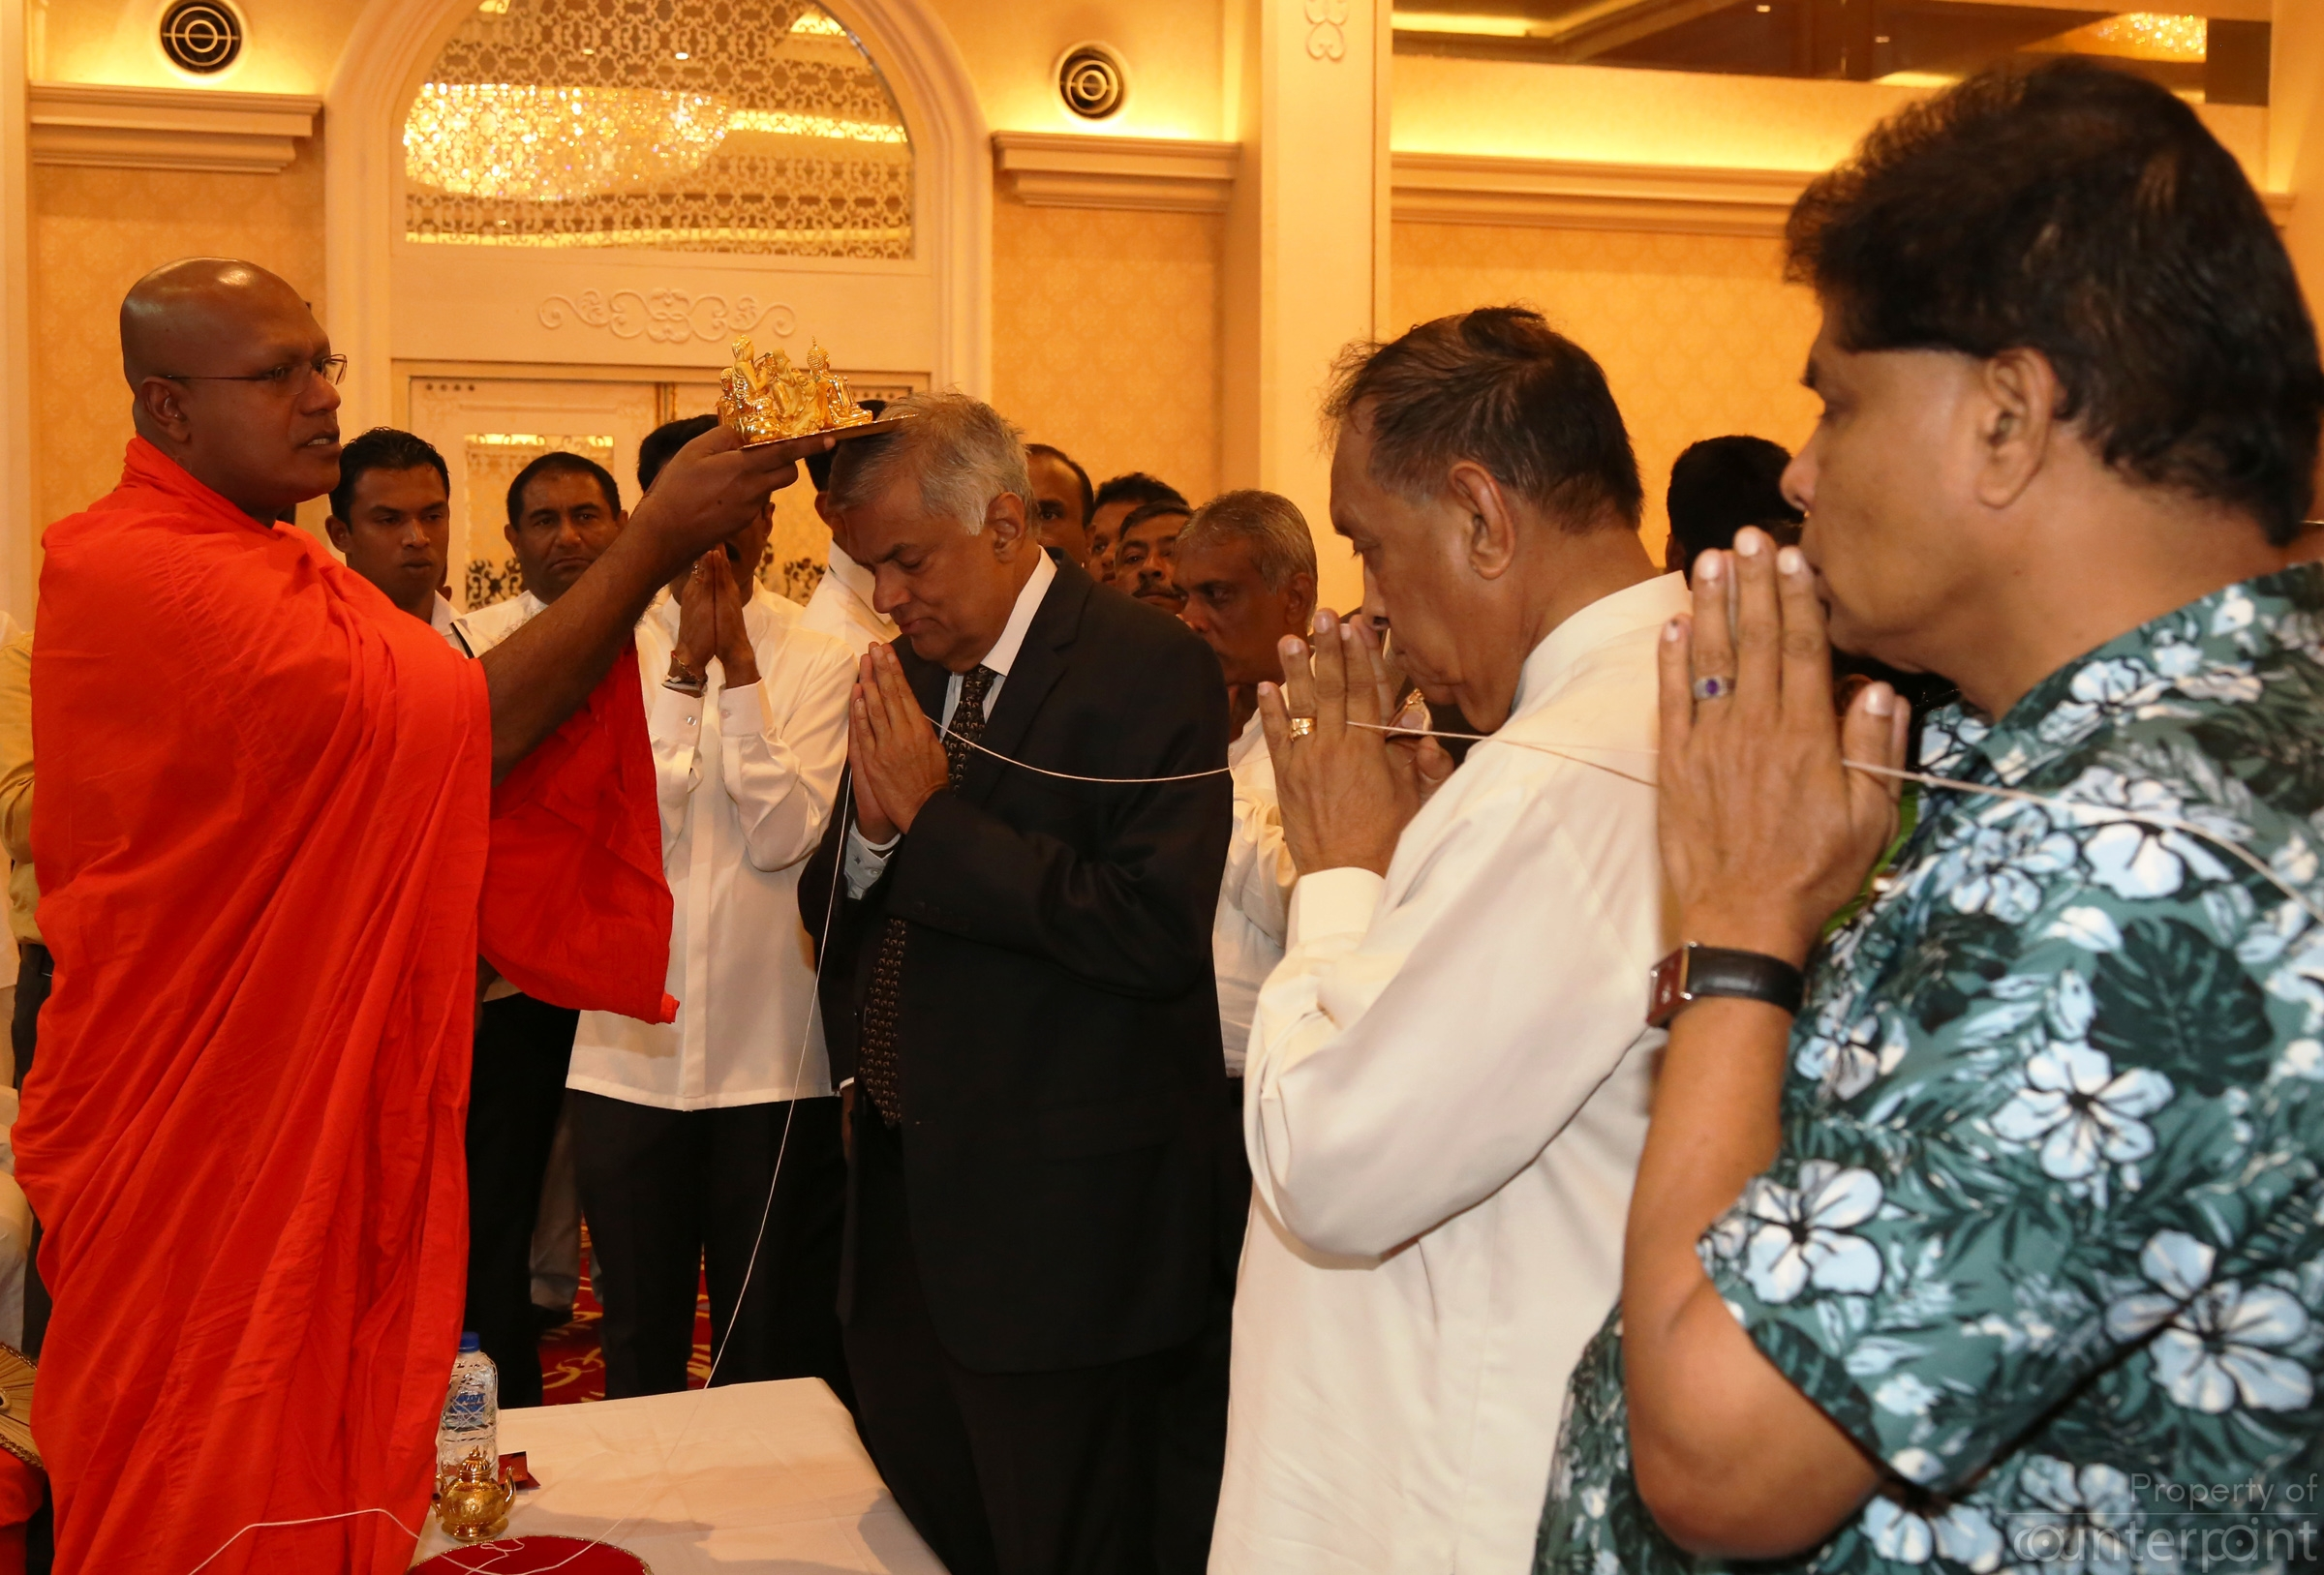 A large group of invitees including clergy of different religions attended a tea party at Temple Trees to mark the start of the New Year. Picture shows Prime Minister Ranil Wickremasinghe receiving blessings from a member of the Buddhist clergy. (PM's media unit)